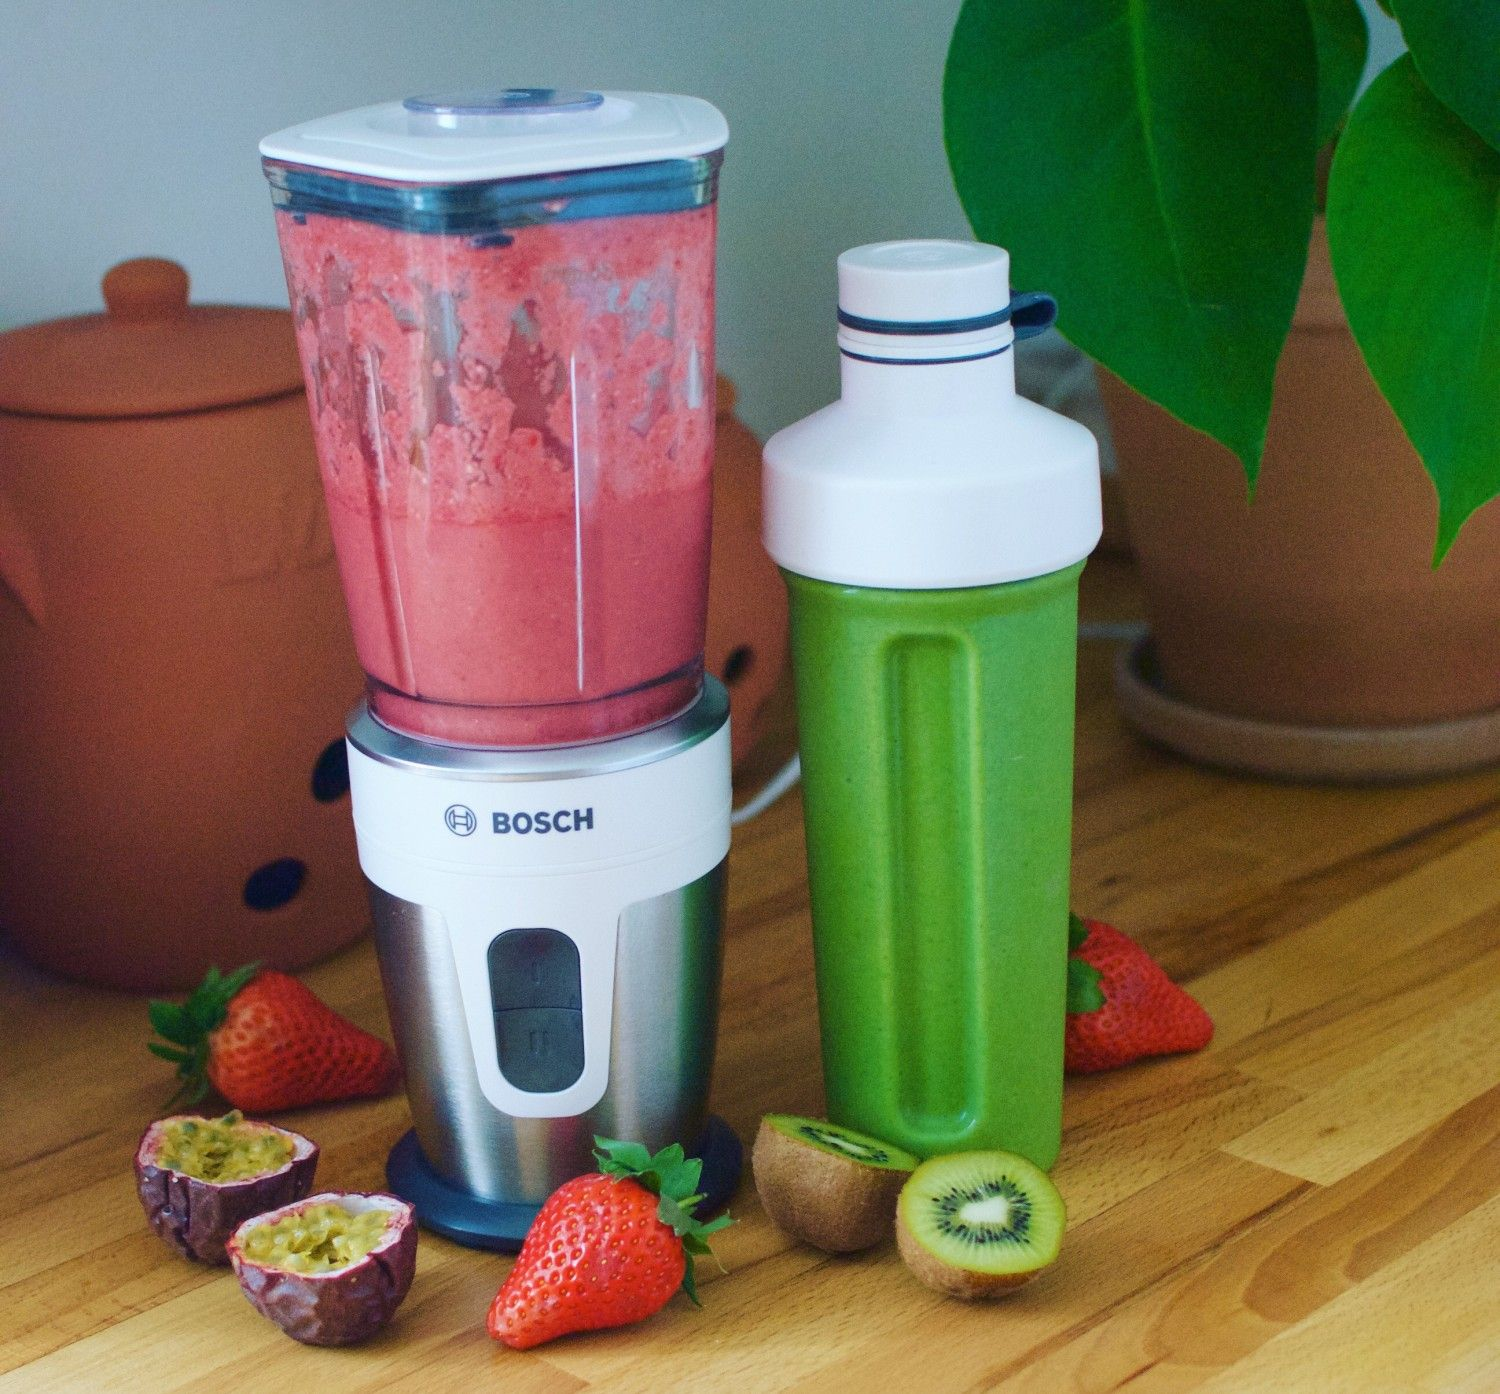 My biggest giveaway yet: Bosch kitchen machine/stand mixer and blender + mine and my sister's favorite workout smoothies